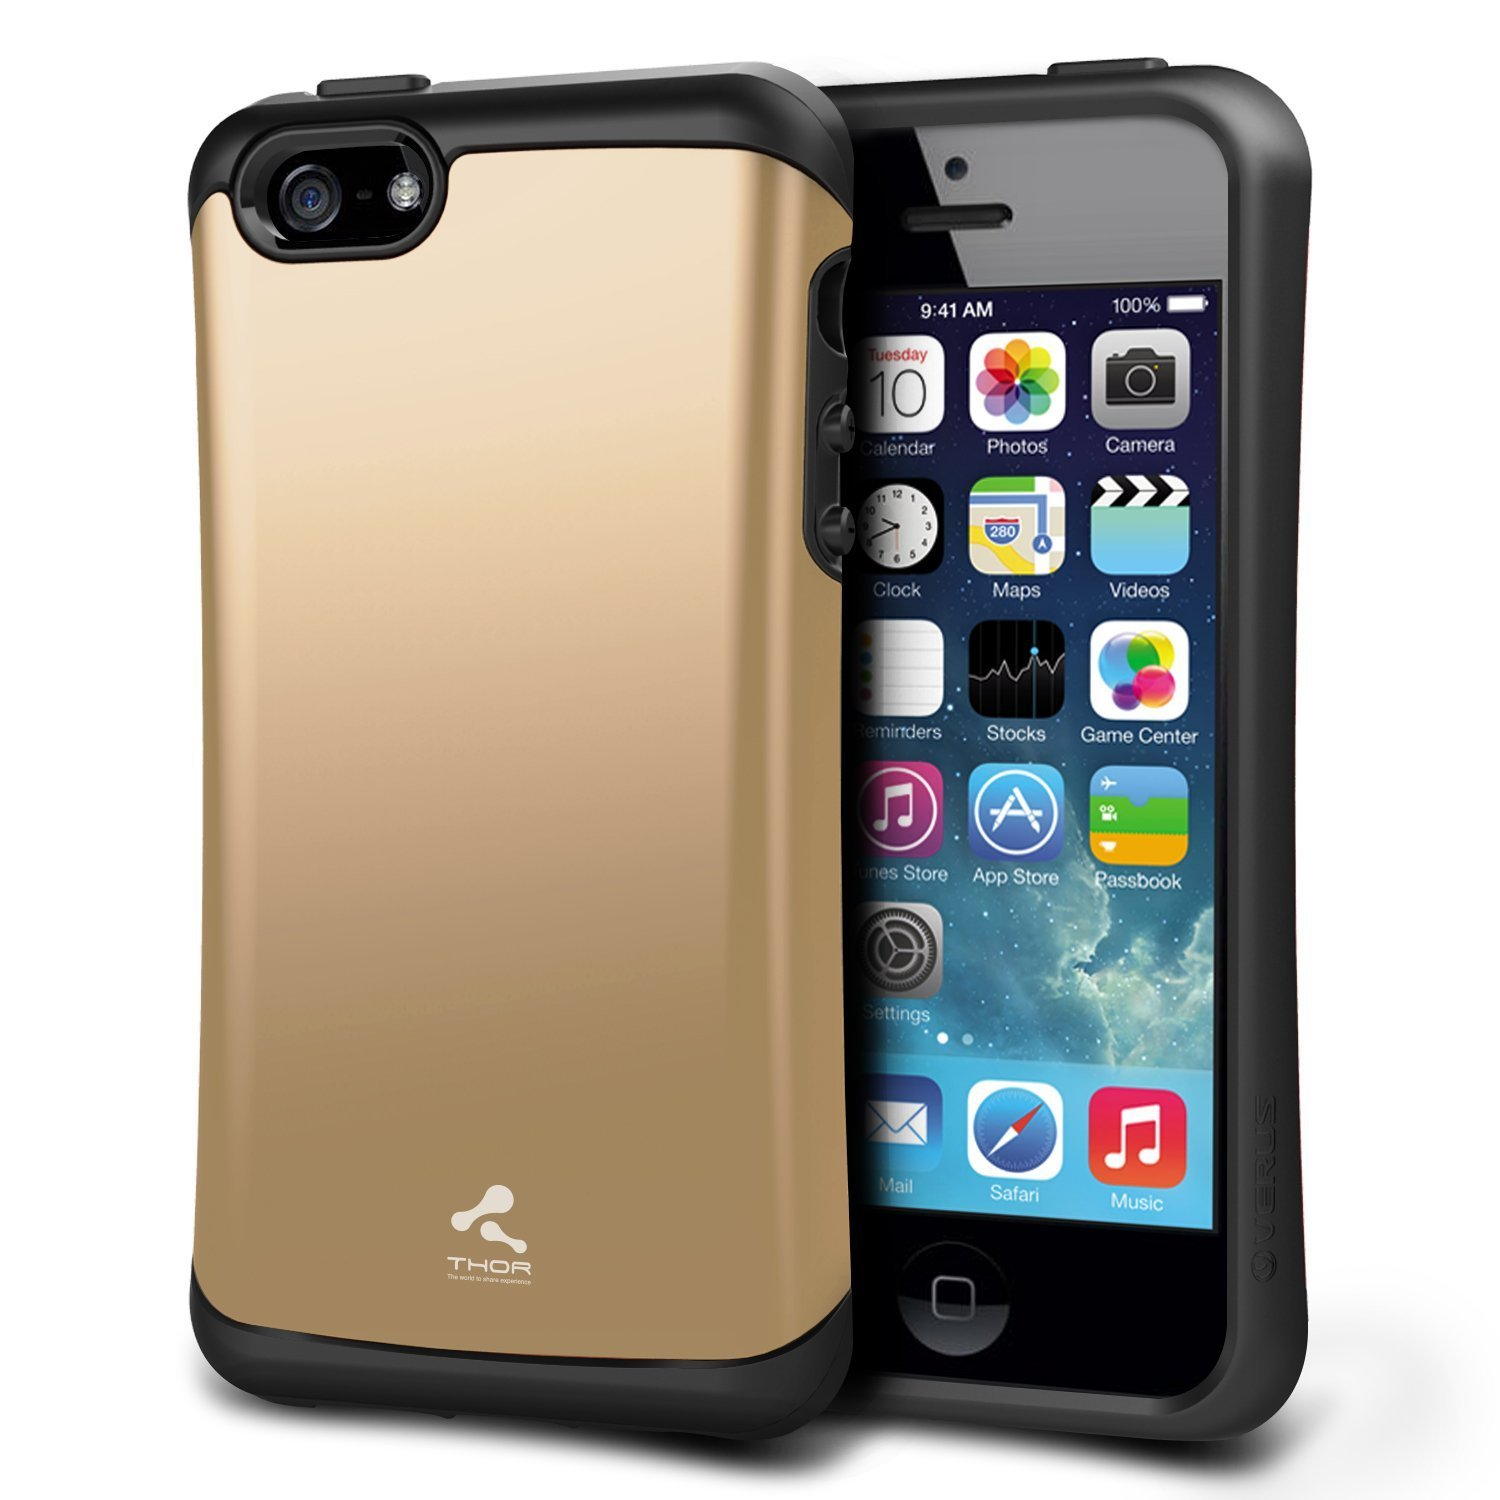 reputable site 81ab6 36319 iPhone 5S Case, Verus [Thor][Shine Gold] - [Military Grade Drop  Protection][Natural Grip] For Apple iPhone 5S